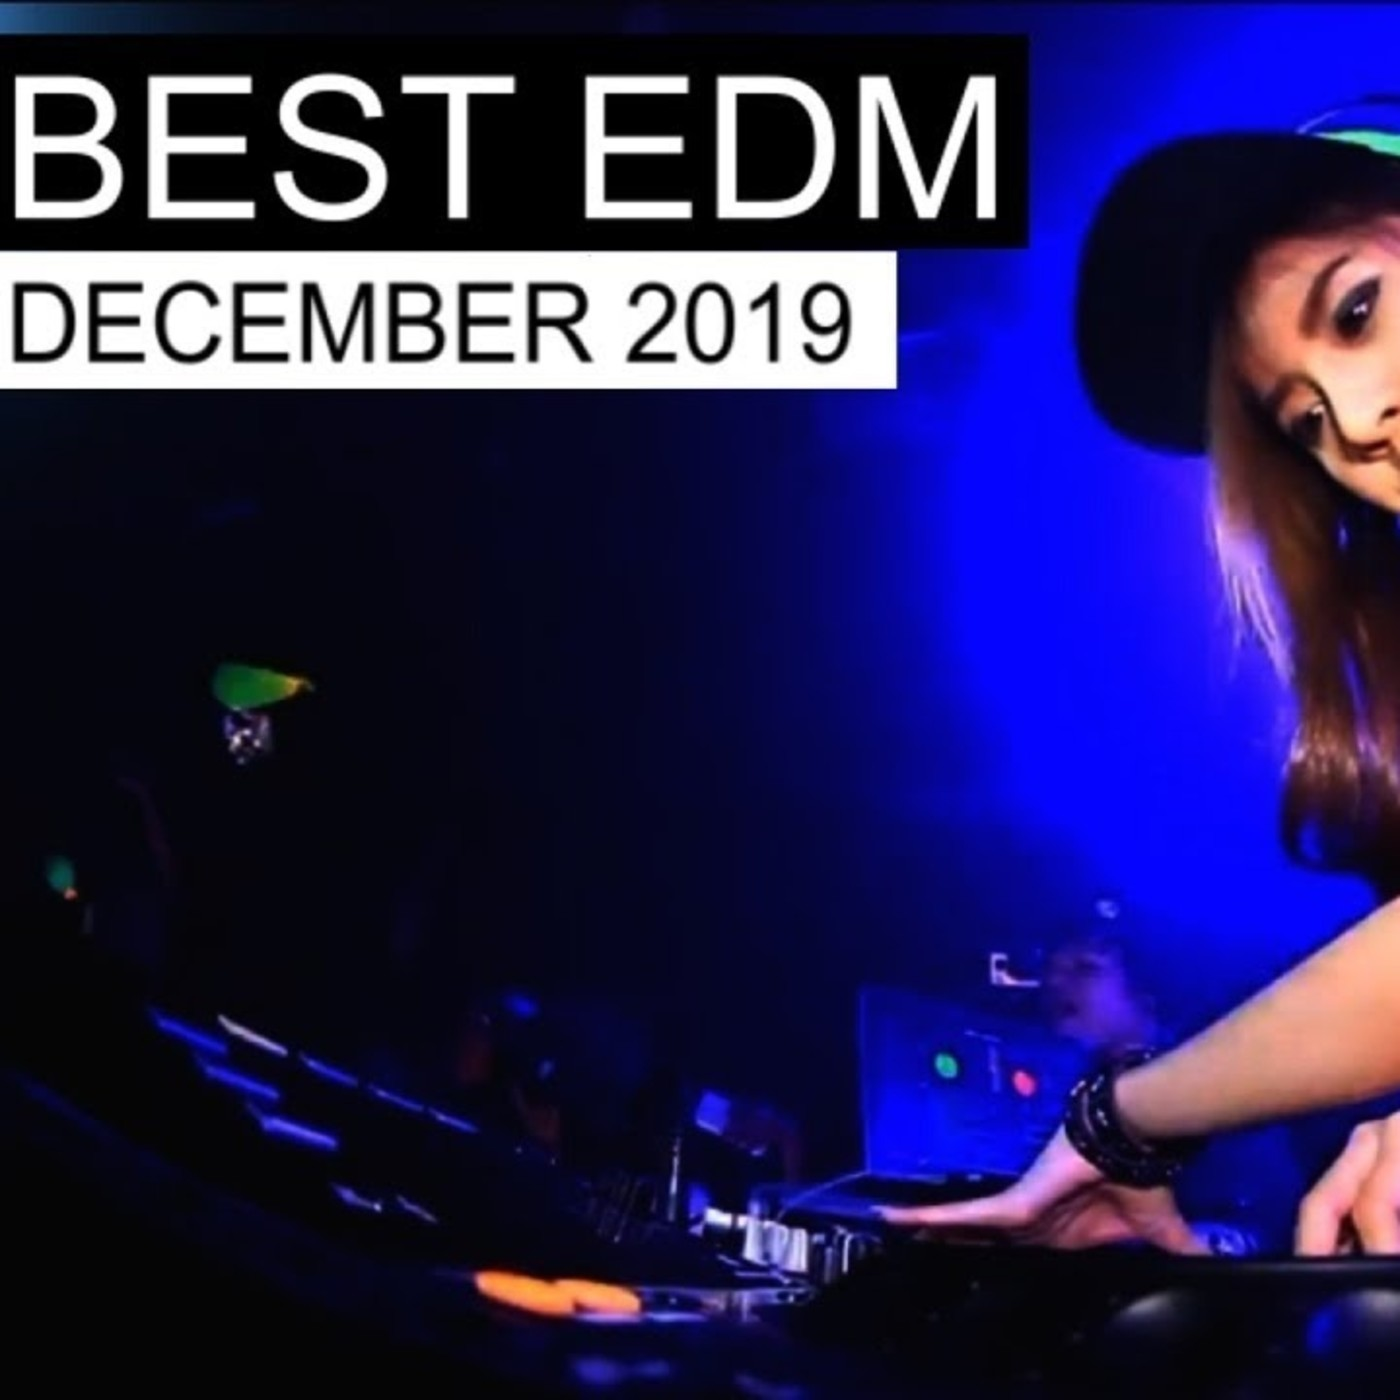 dj-special-sessions-in-december-2019